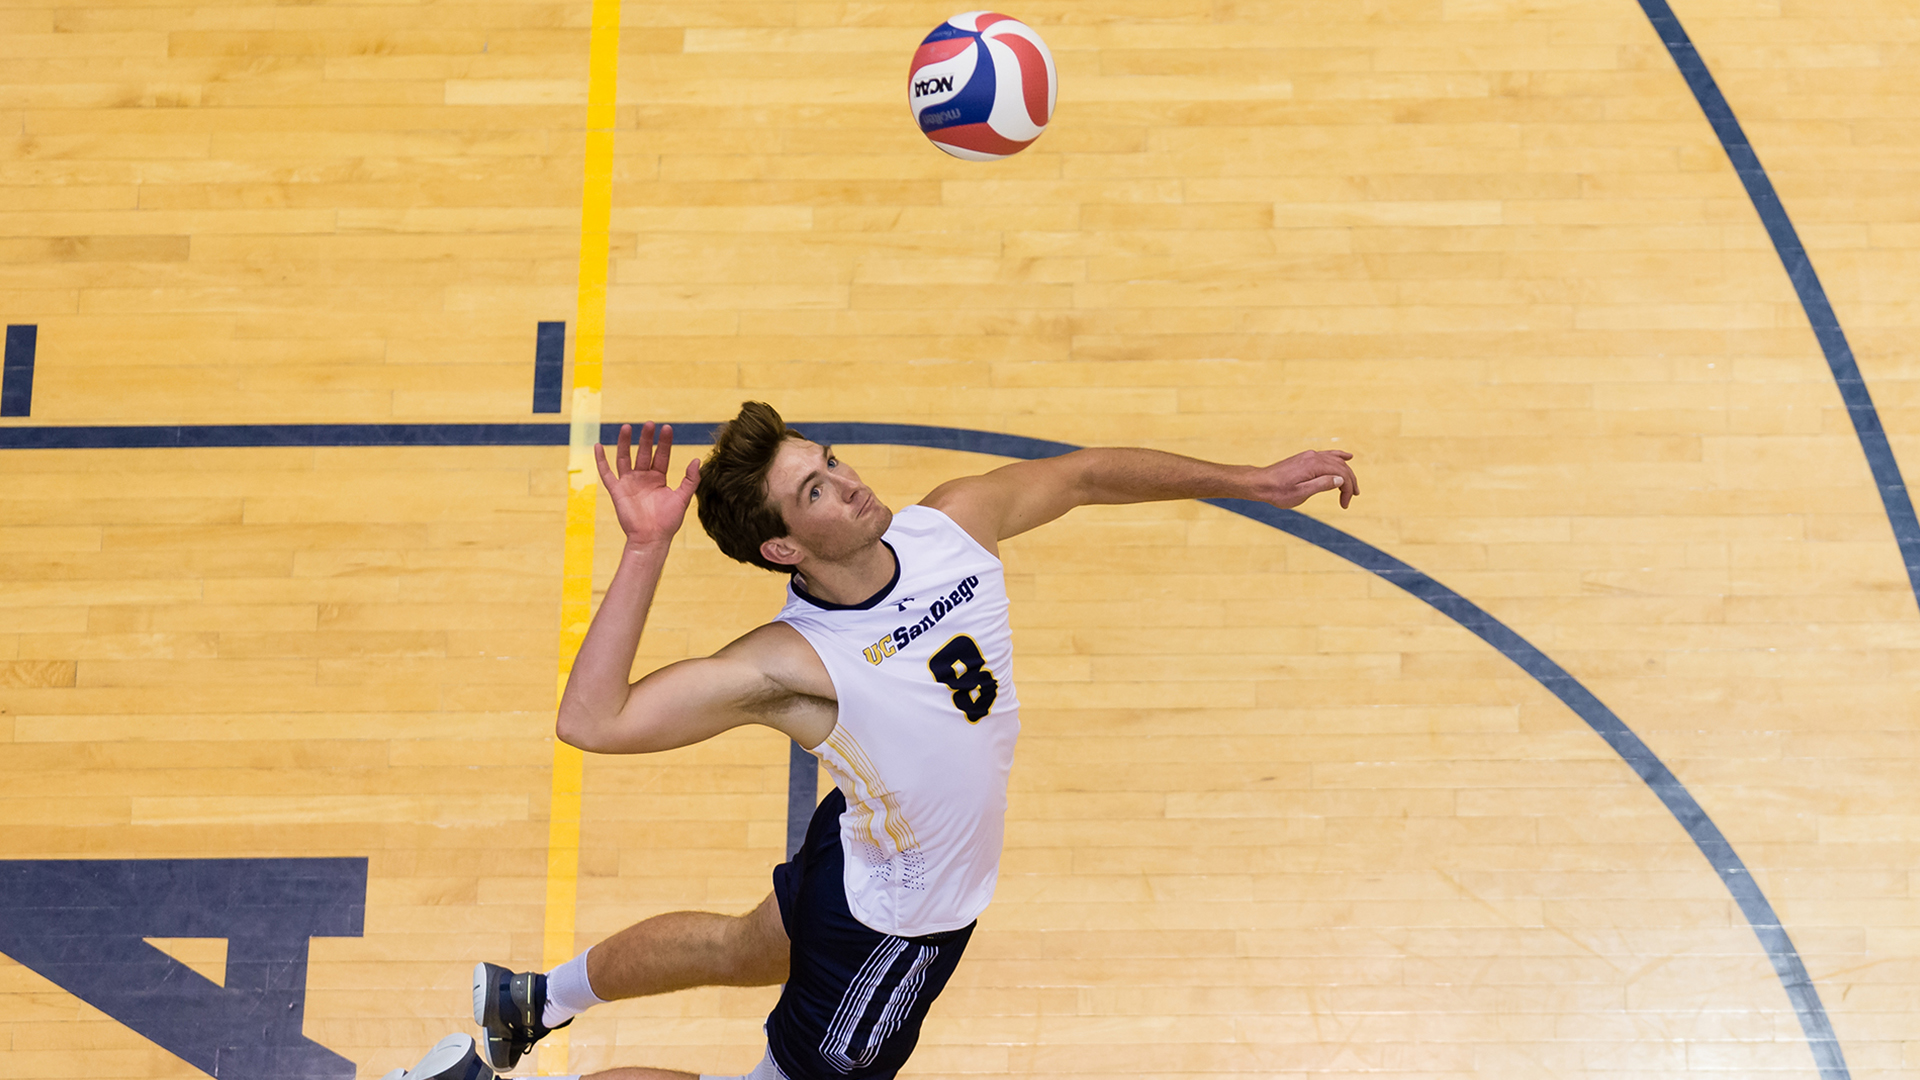 Uc San Diego Men S Volleyball Joins Avca Top 15 Big West Conference